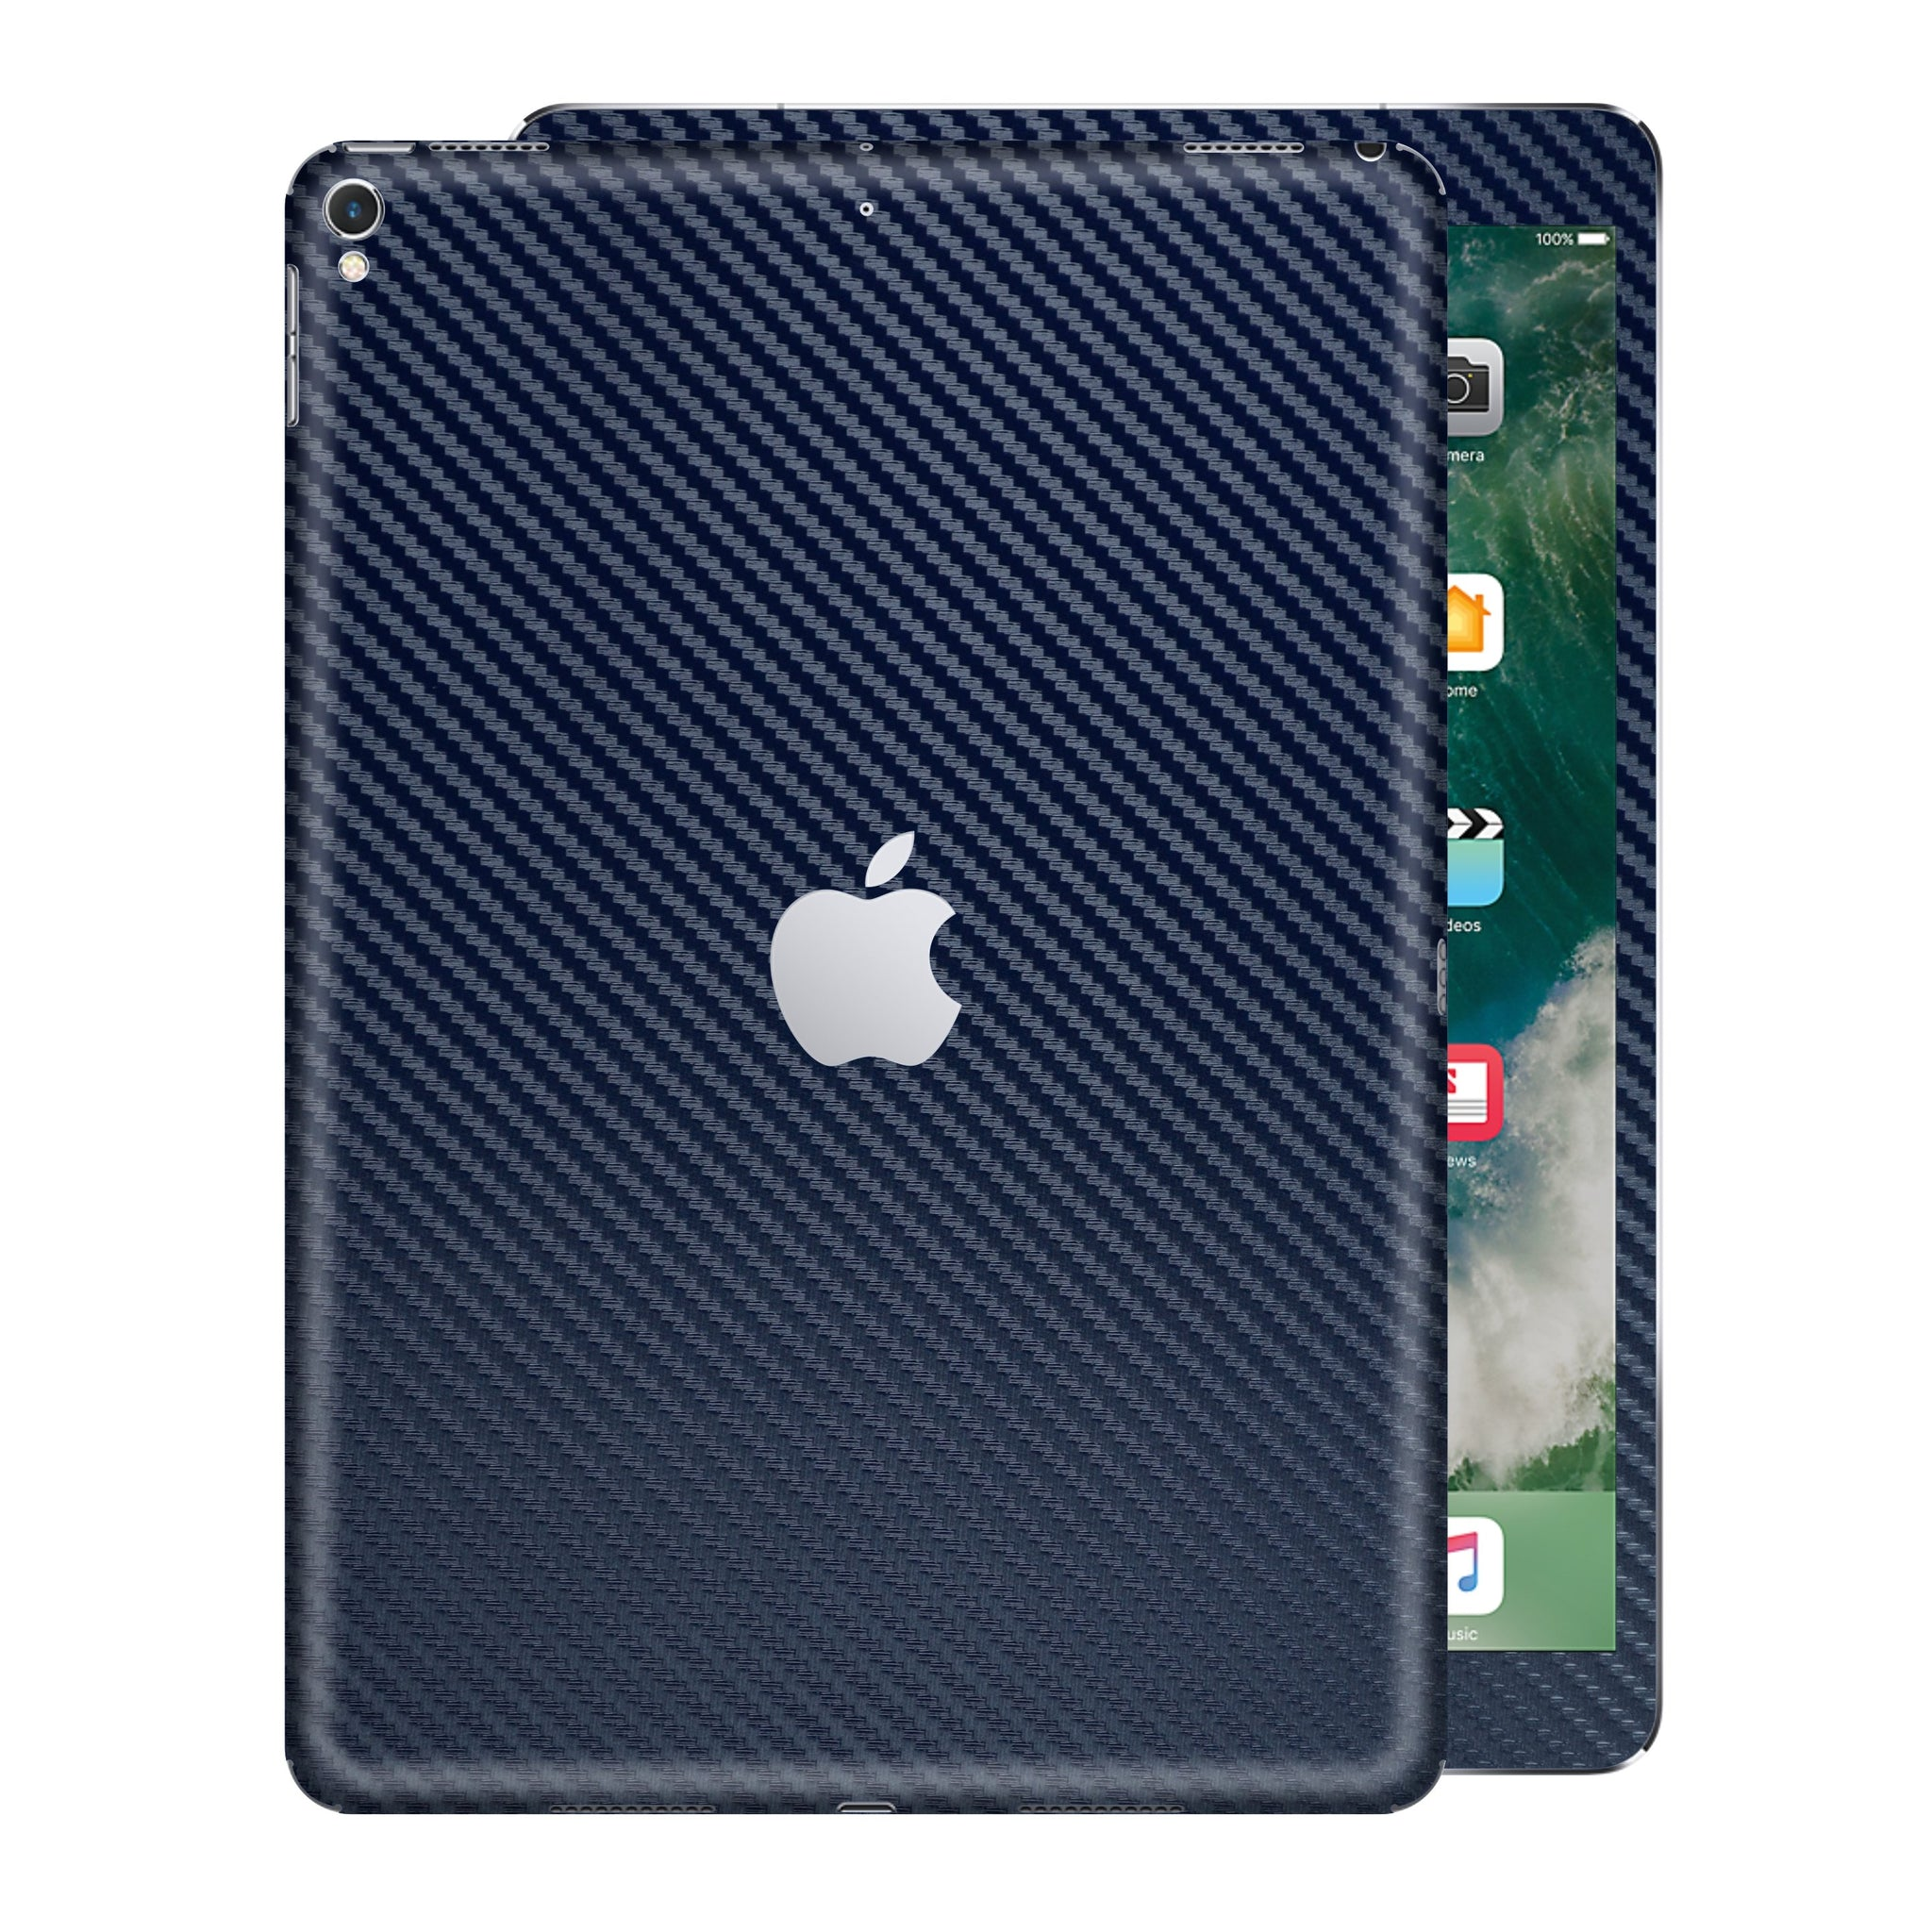 "iPad PRO 12.9"" 2nd Generation 2017 Navy Blue 3D Textured CARBON Fibre Fiber Skin Wrap Sticker Decal Cover Protector by EasySkinz"